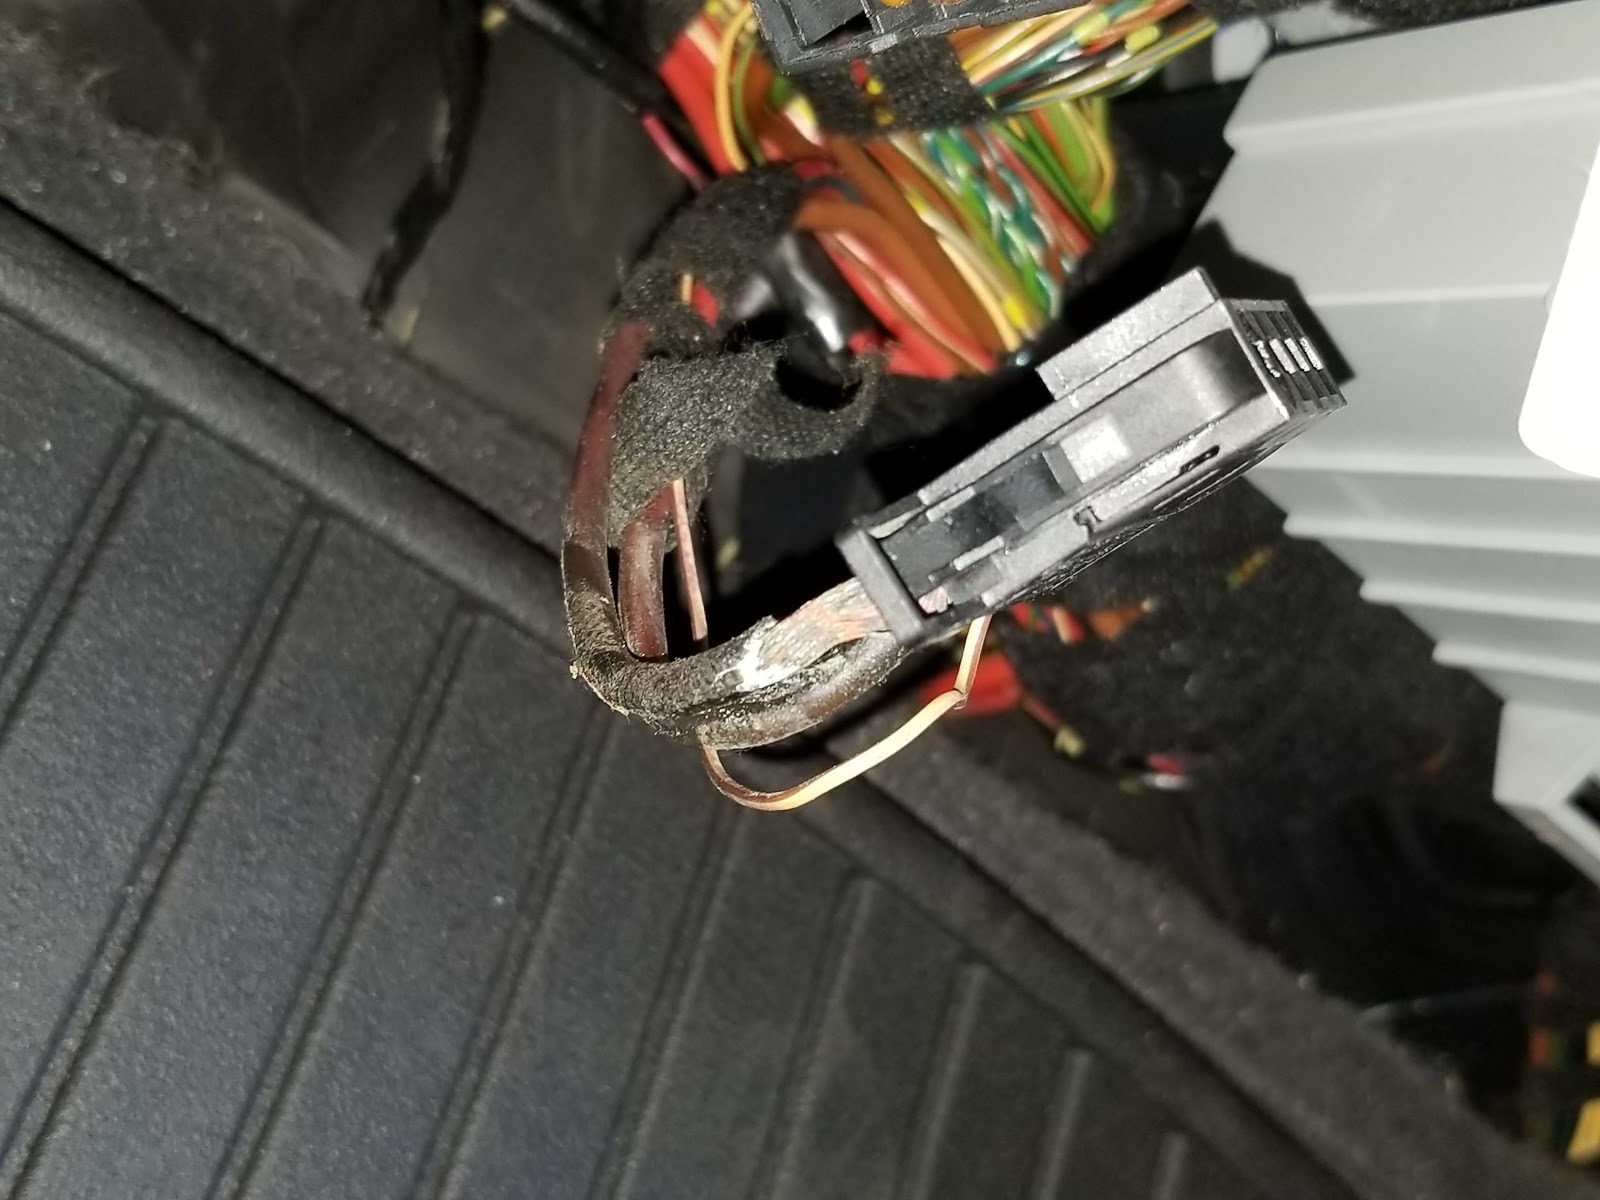 hight resolution of welcome to my blog bmw stories and more e90 bmw recalls my rh msauceda1 blogspot com bmw radio wiring harness bmw wiring harness diagram